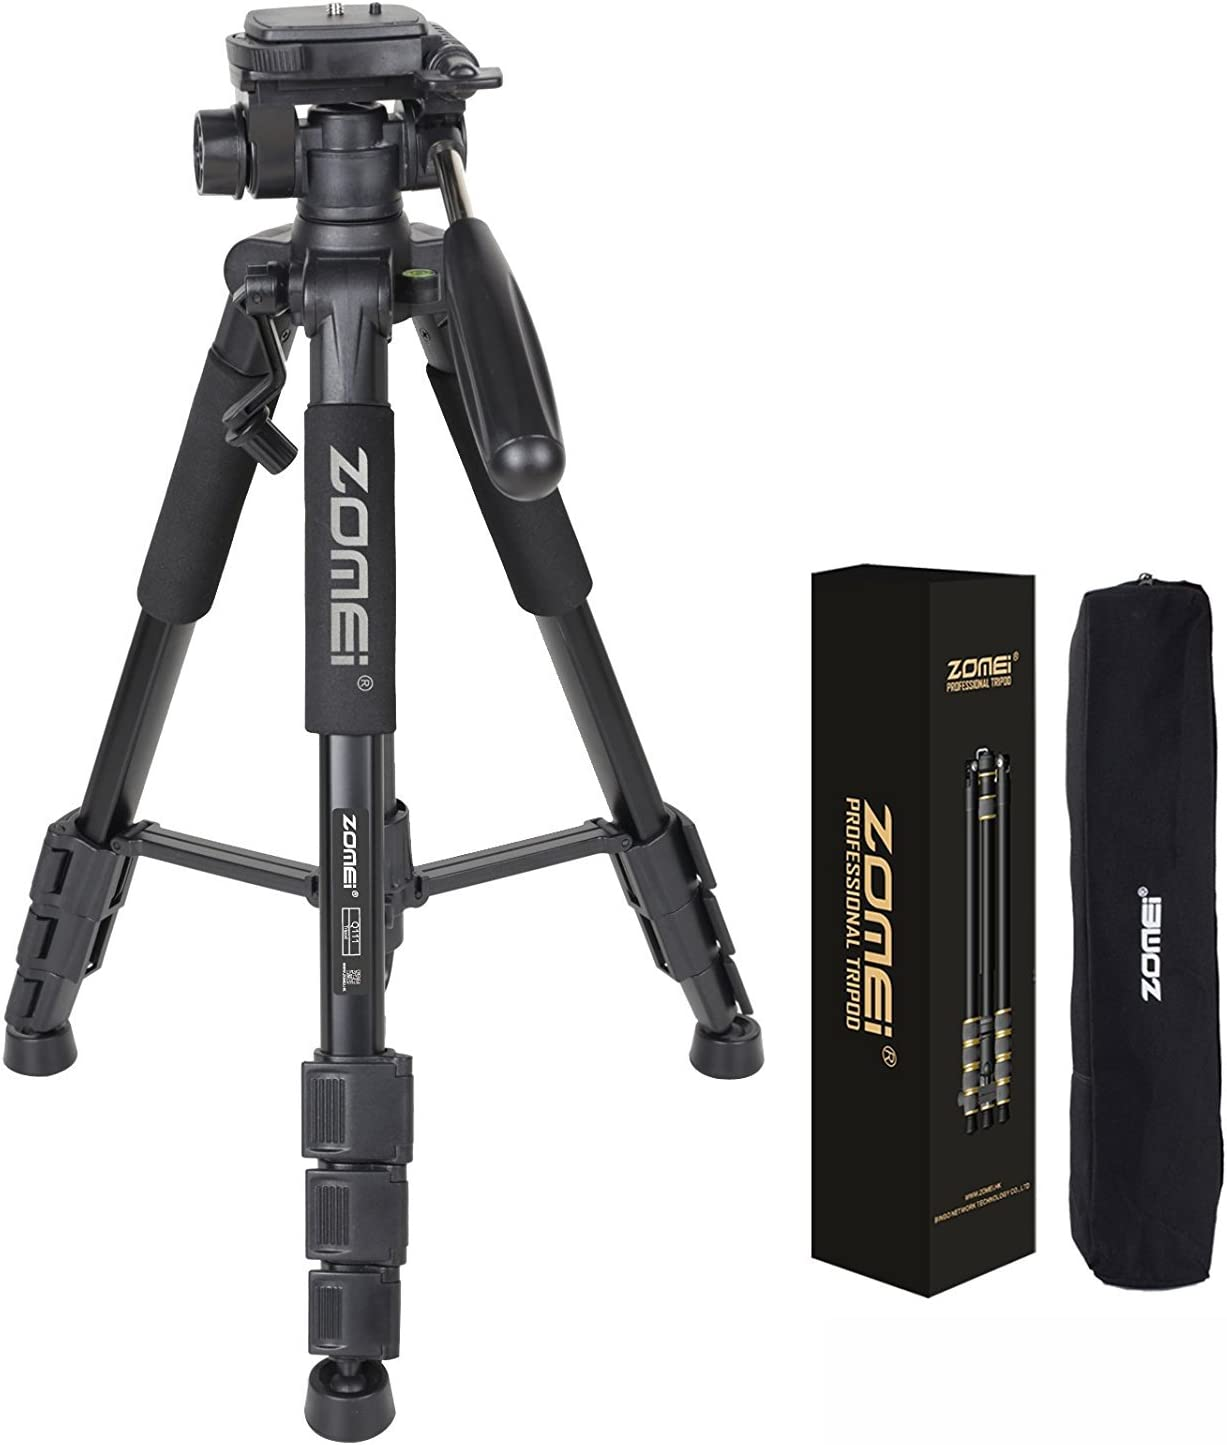 Zippem 55 Professional Aluminum Alloy Camera Tripod for DSLR Canon Nikon Sony DV Video and Smart US Stock